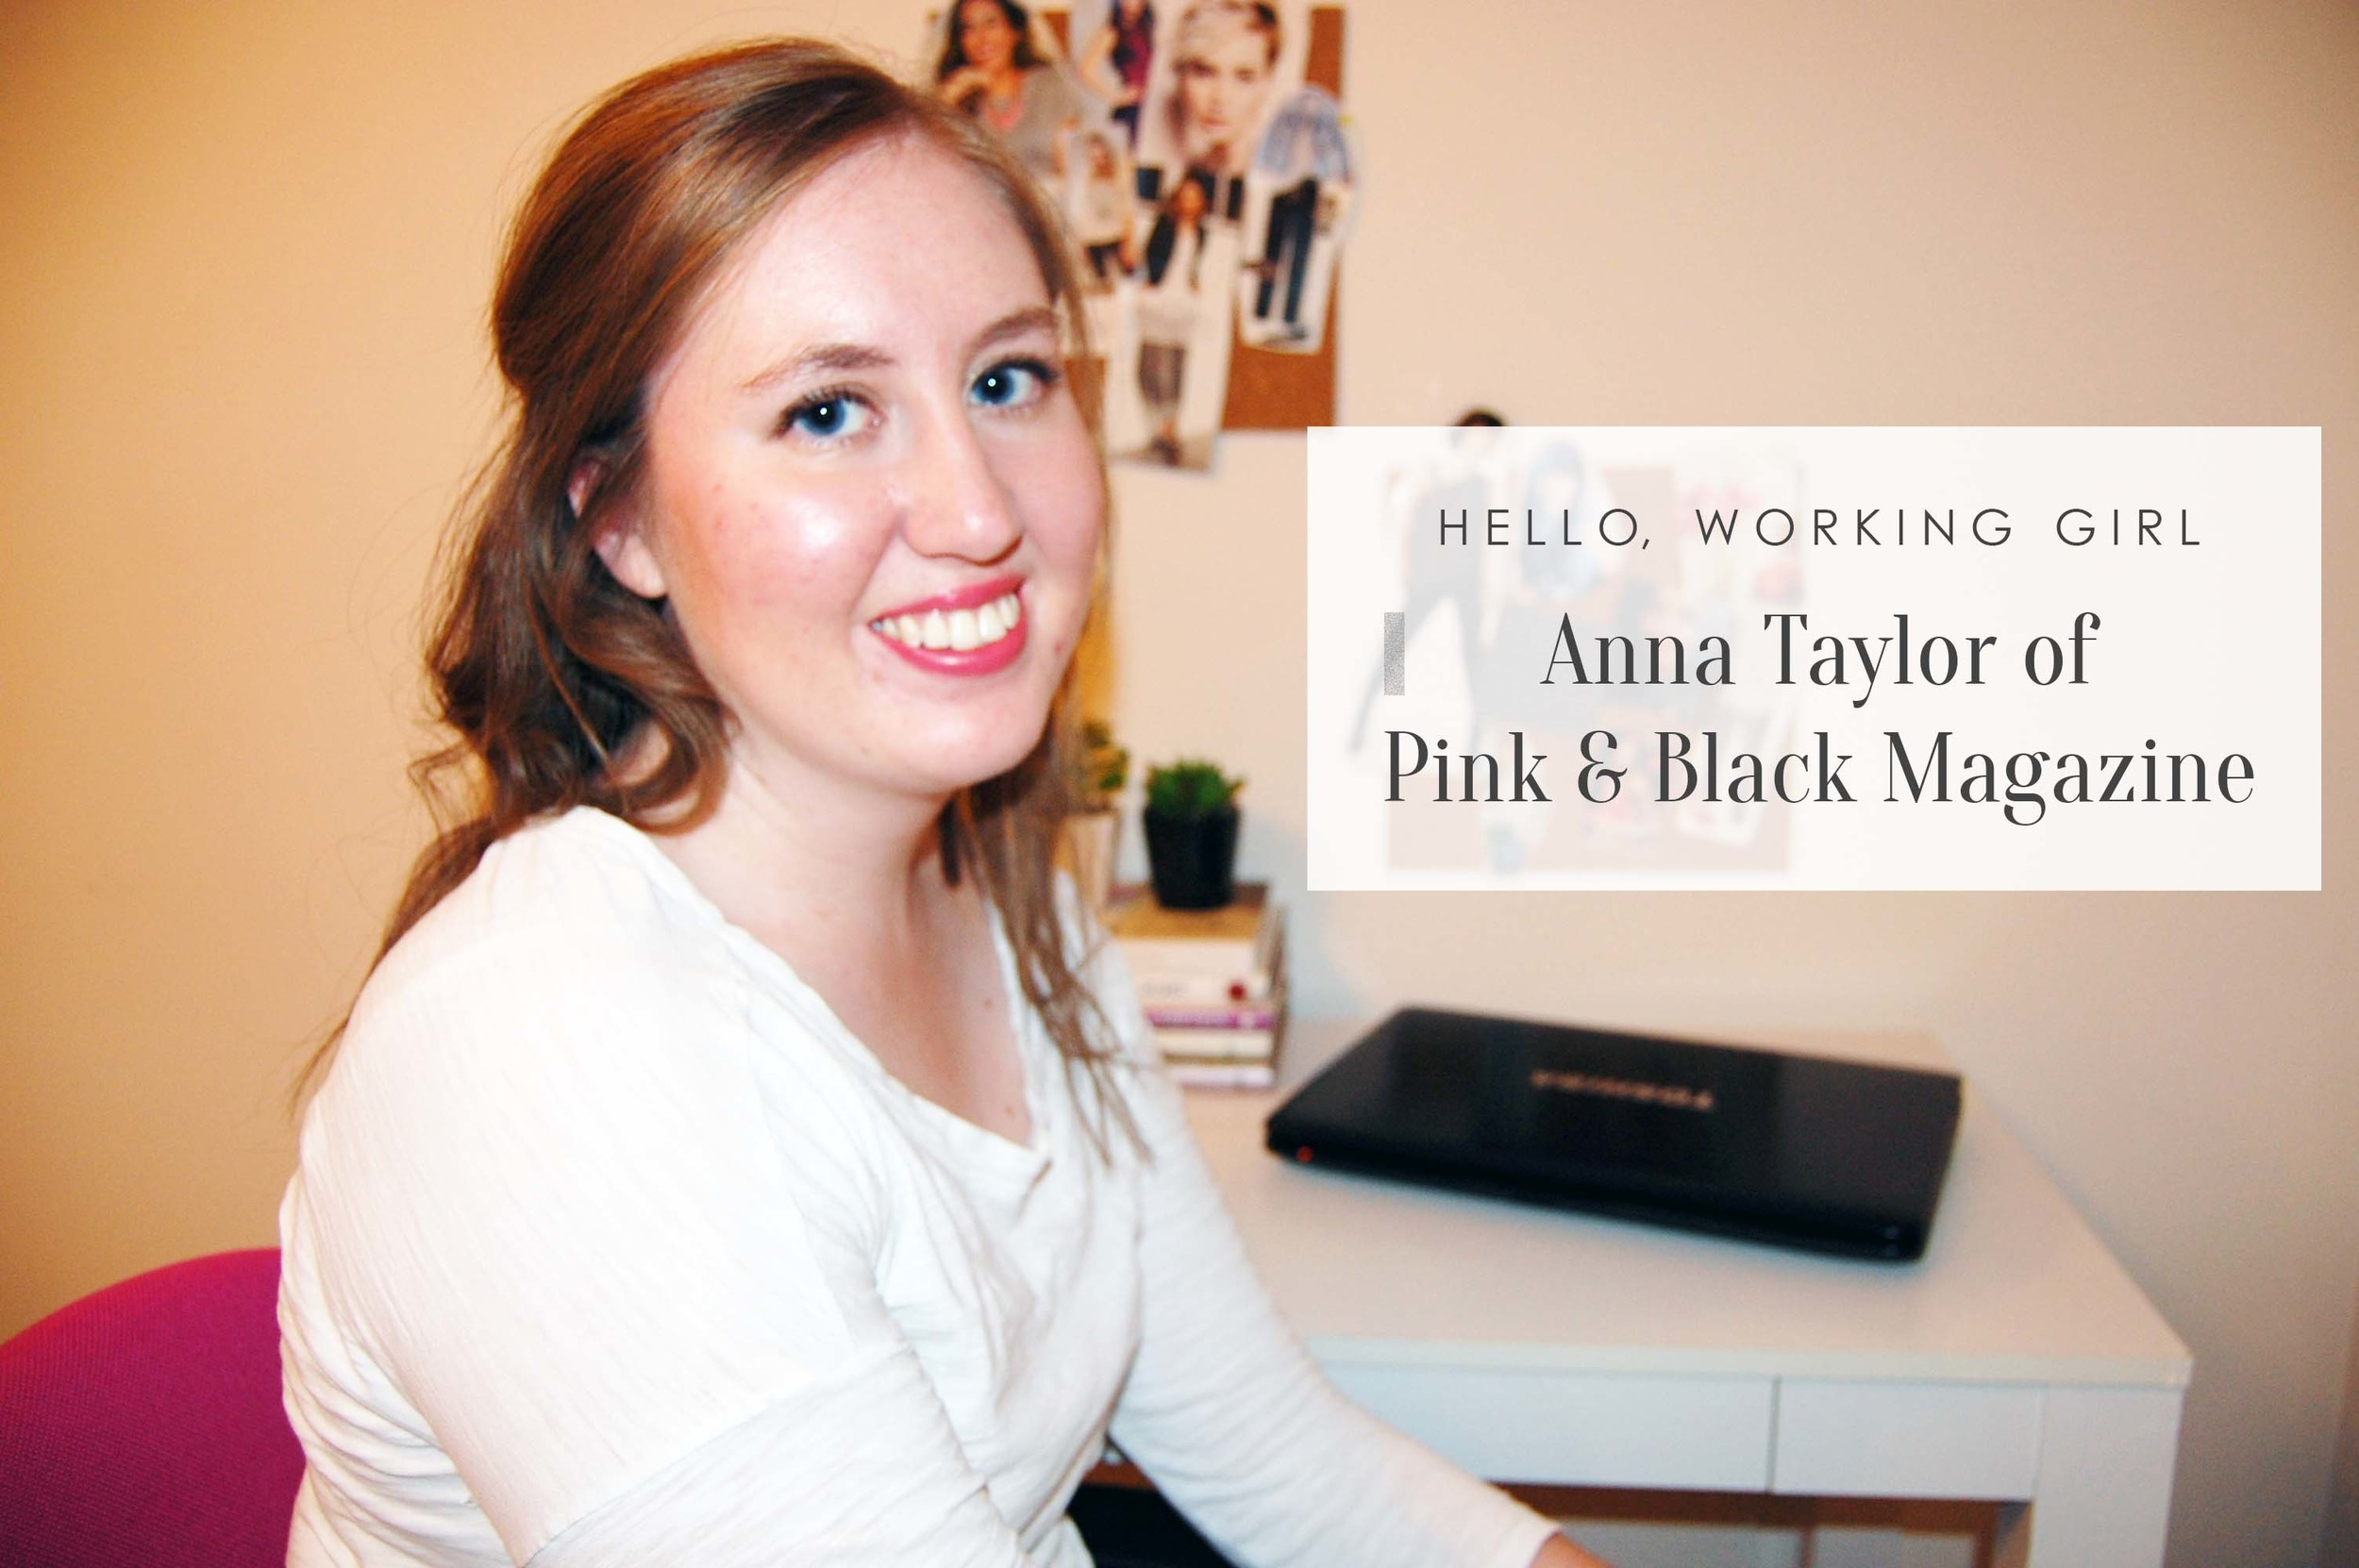 Hello, Working Girl: Anna Taylor of Pink & Black Magazine